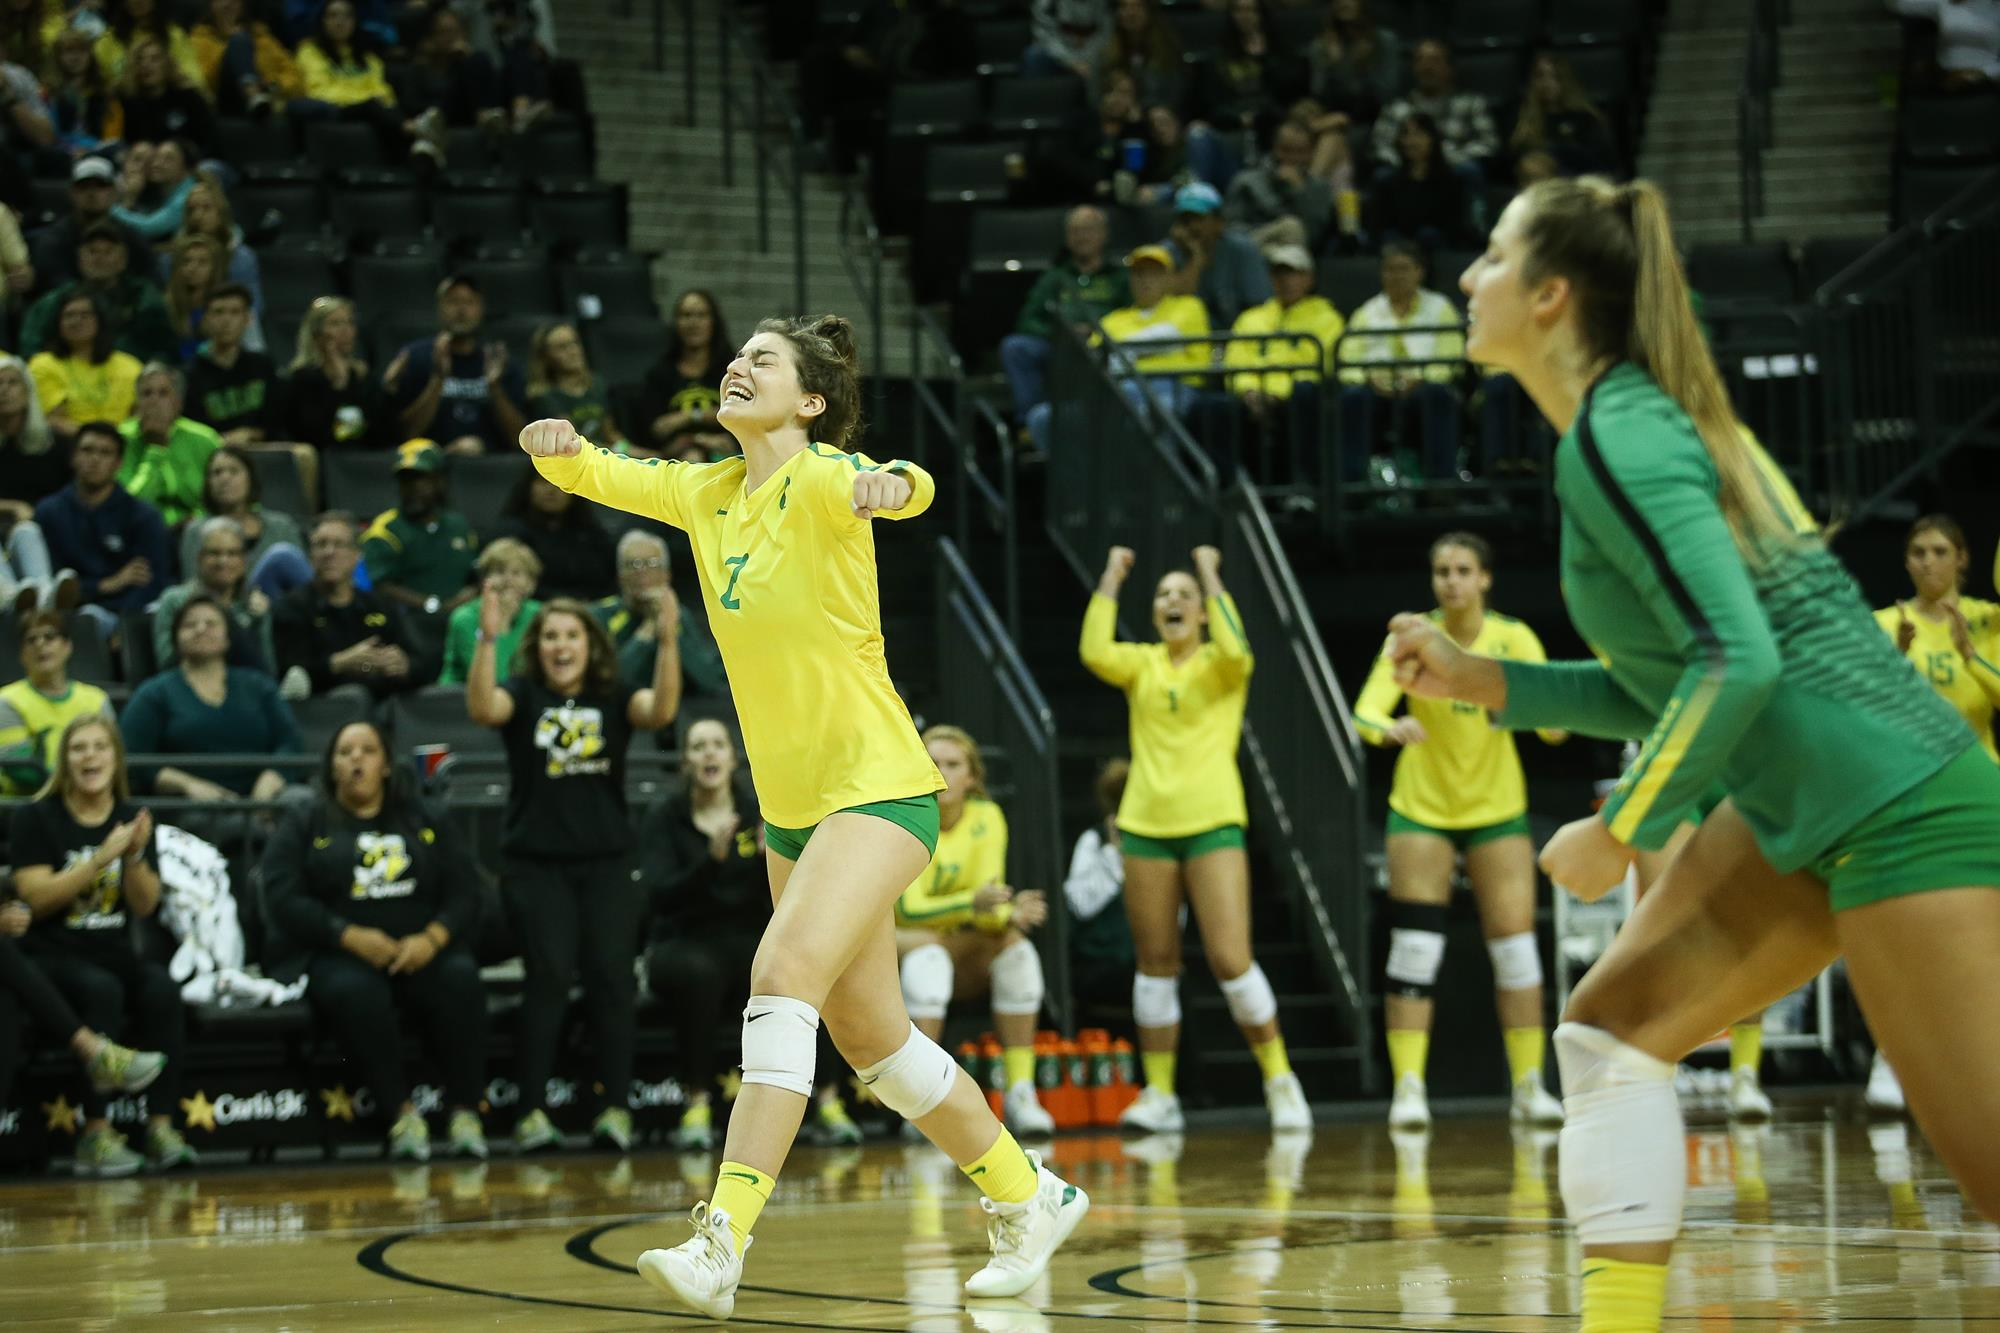 College volleyball: No. 6 Pitt beats No. 10 Oregon in